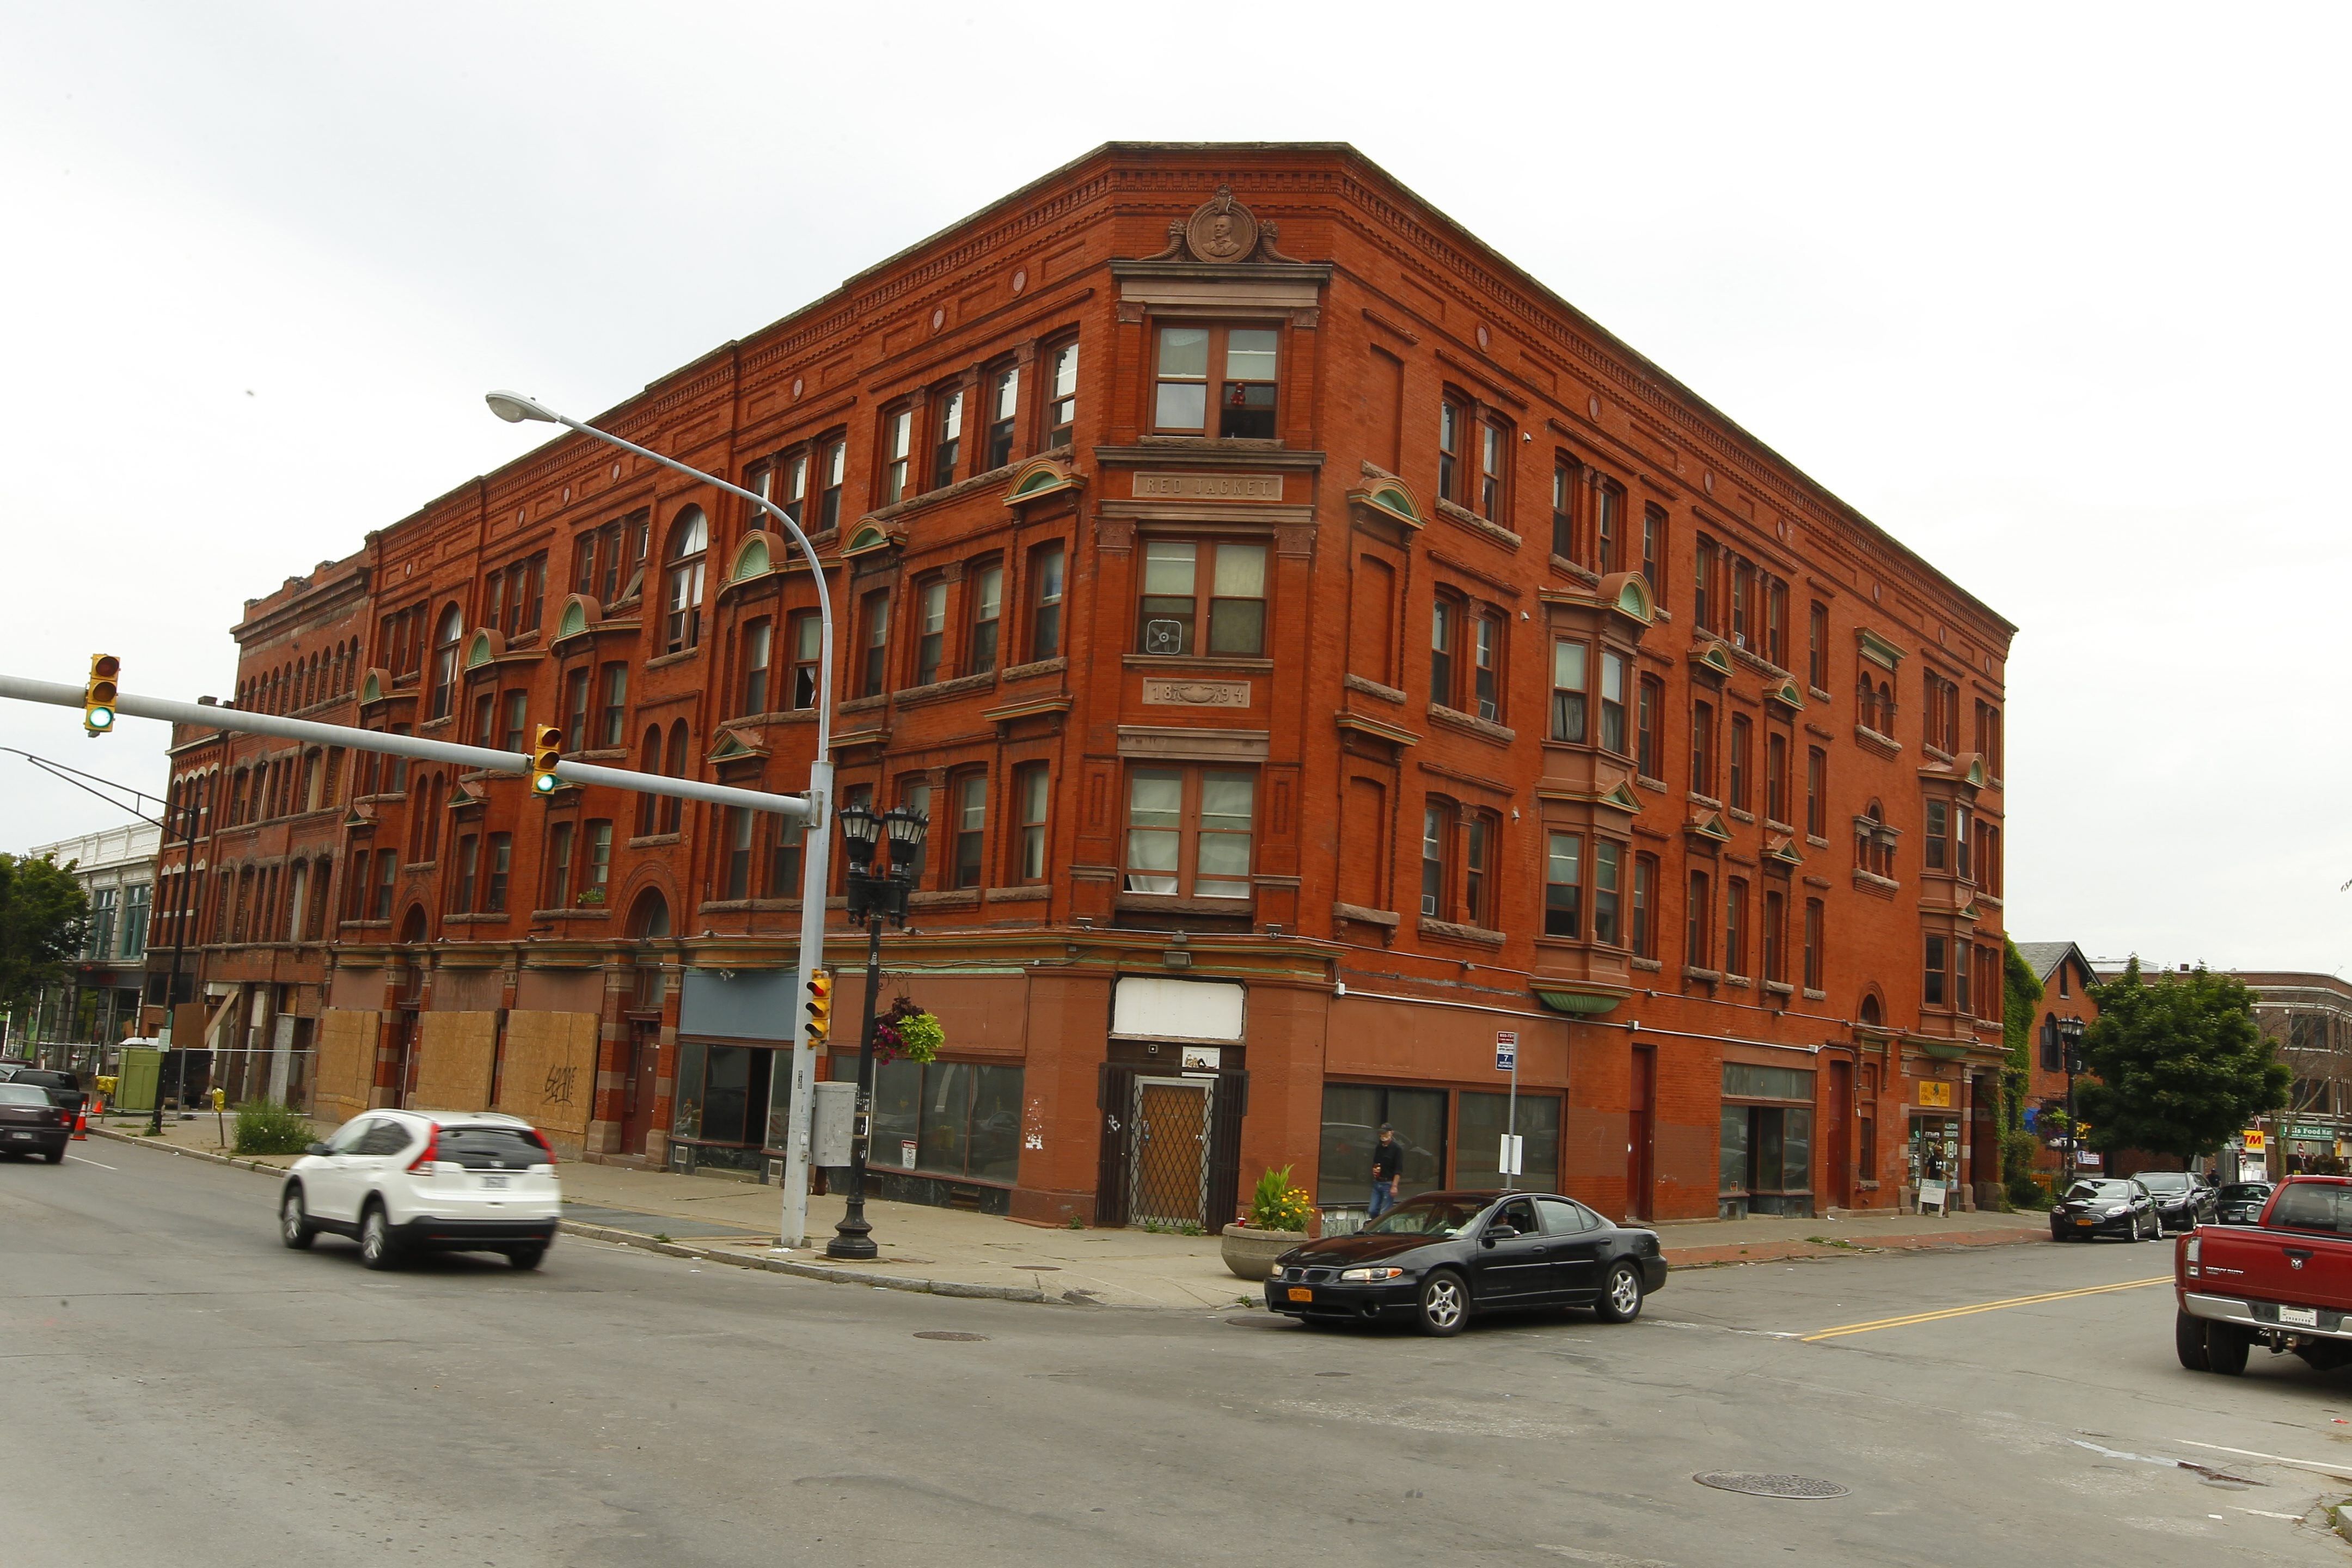 The Red Jacket Building, at the corner of Main and Allen streets, has been sold and will contain residential units.